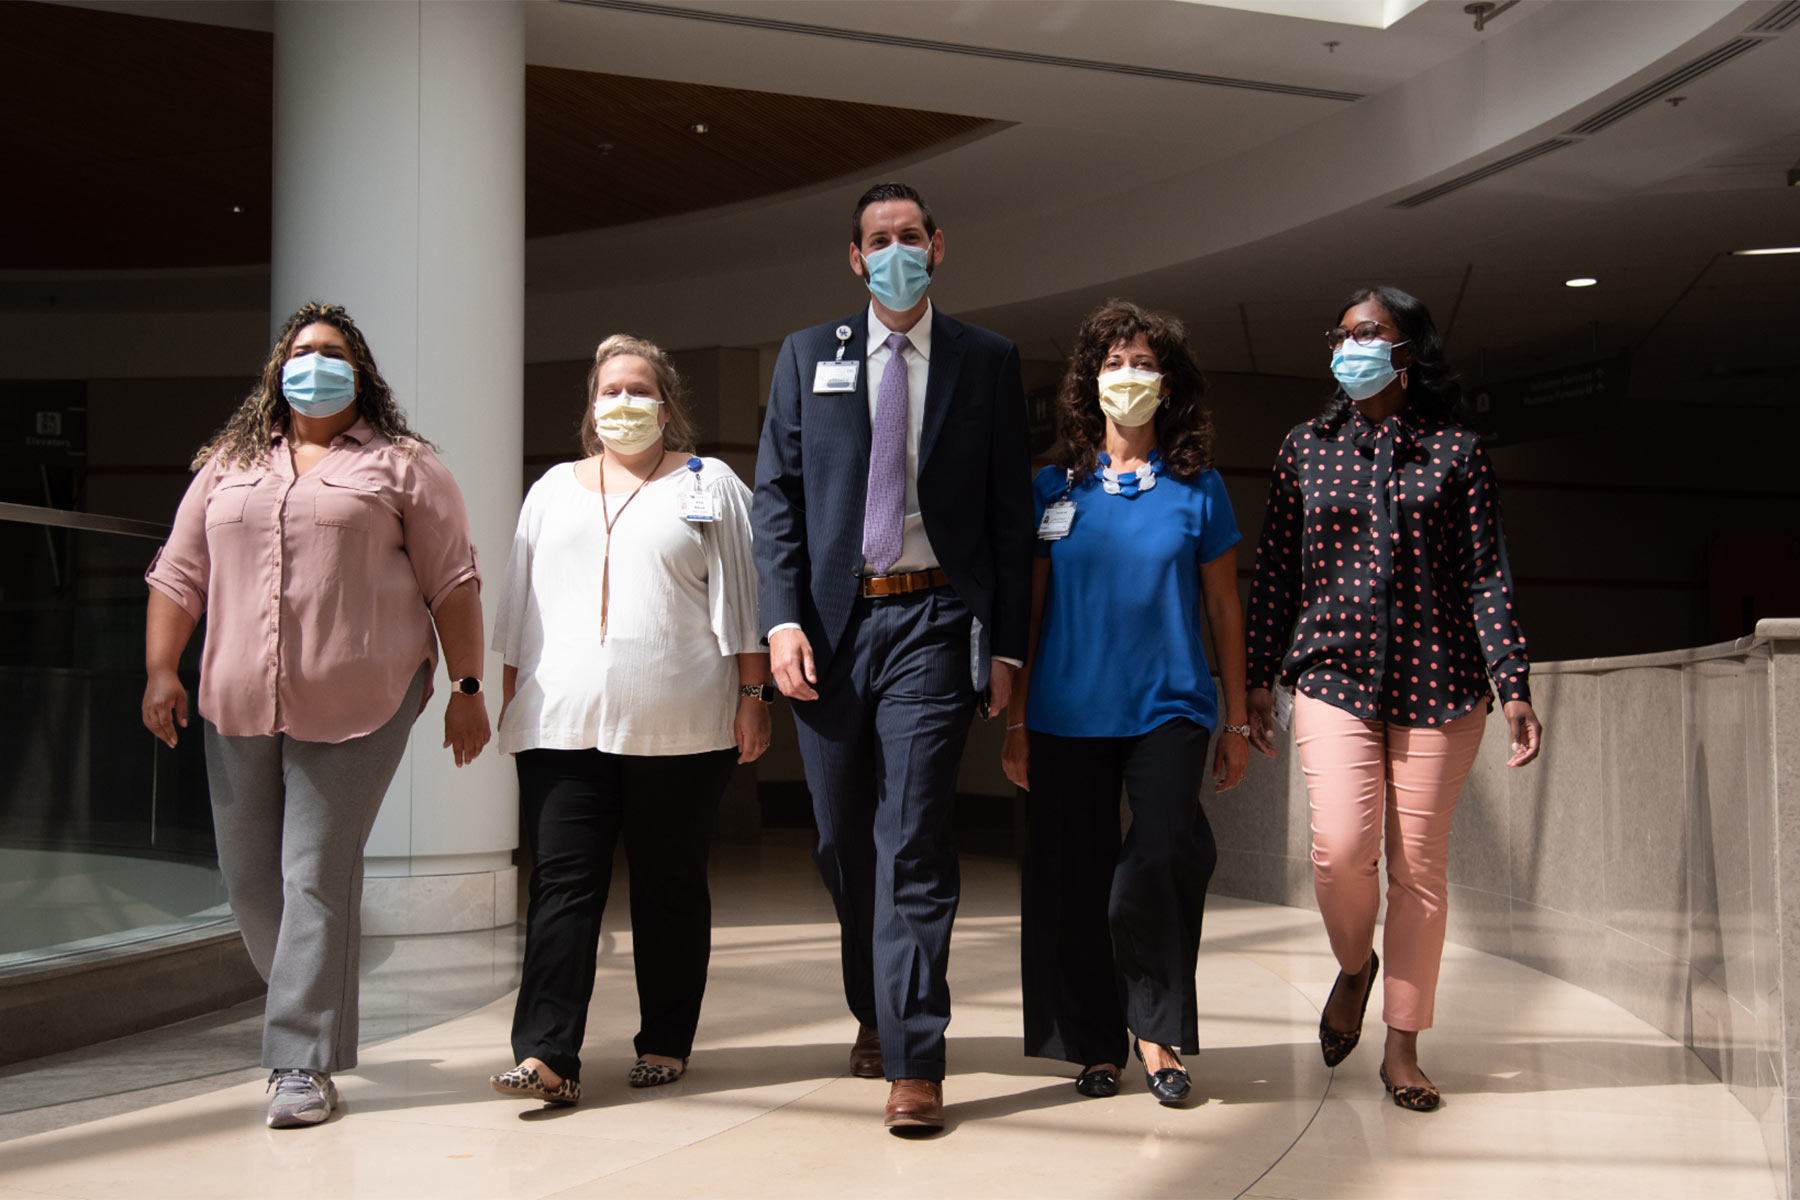 A group of people walking side by side down an open hallway, all wearing face masks.